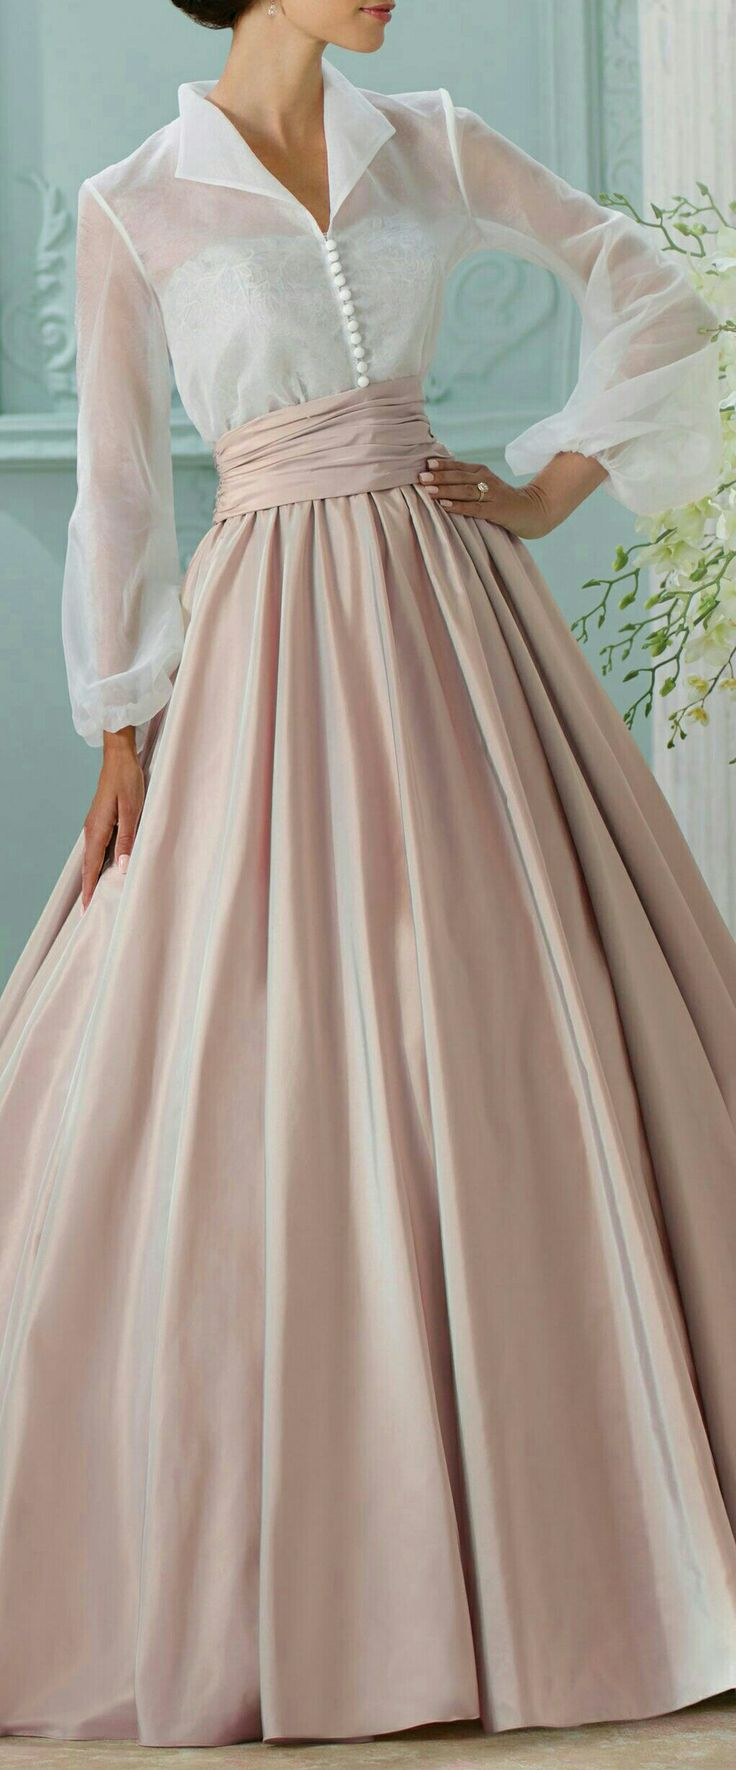 Reminds me of Anna from the King and I, a big hoop skirt - love it